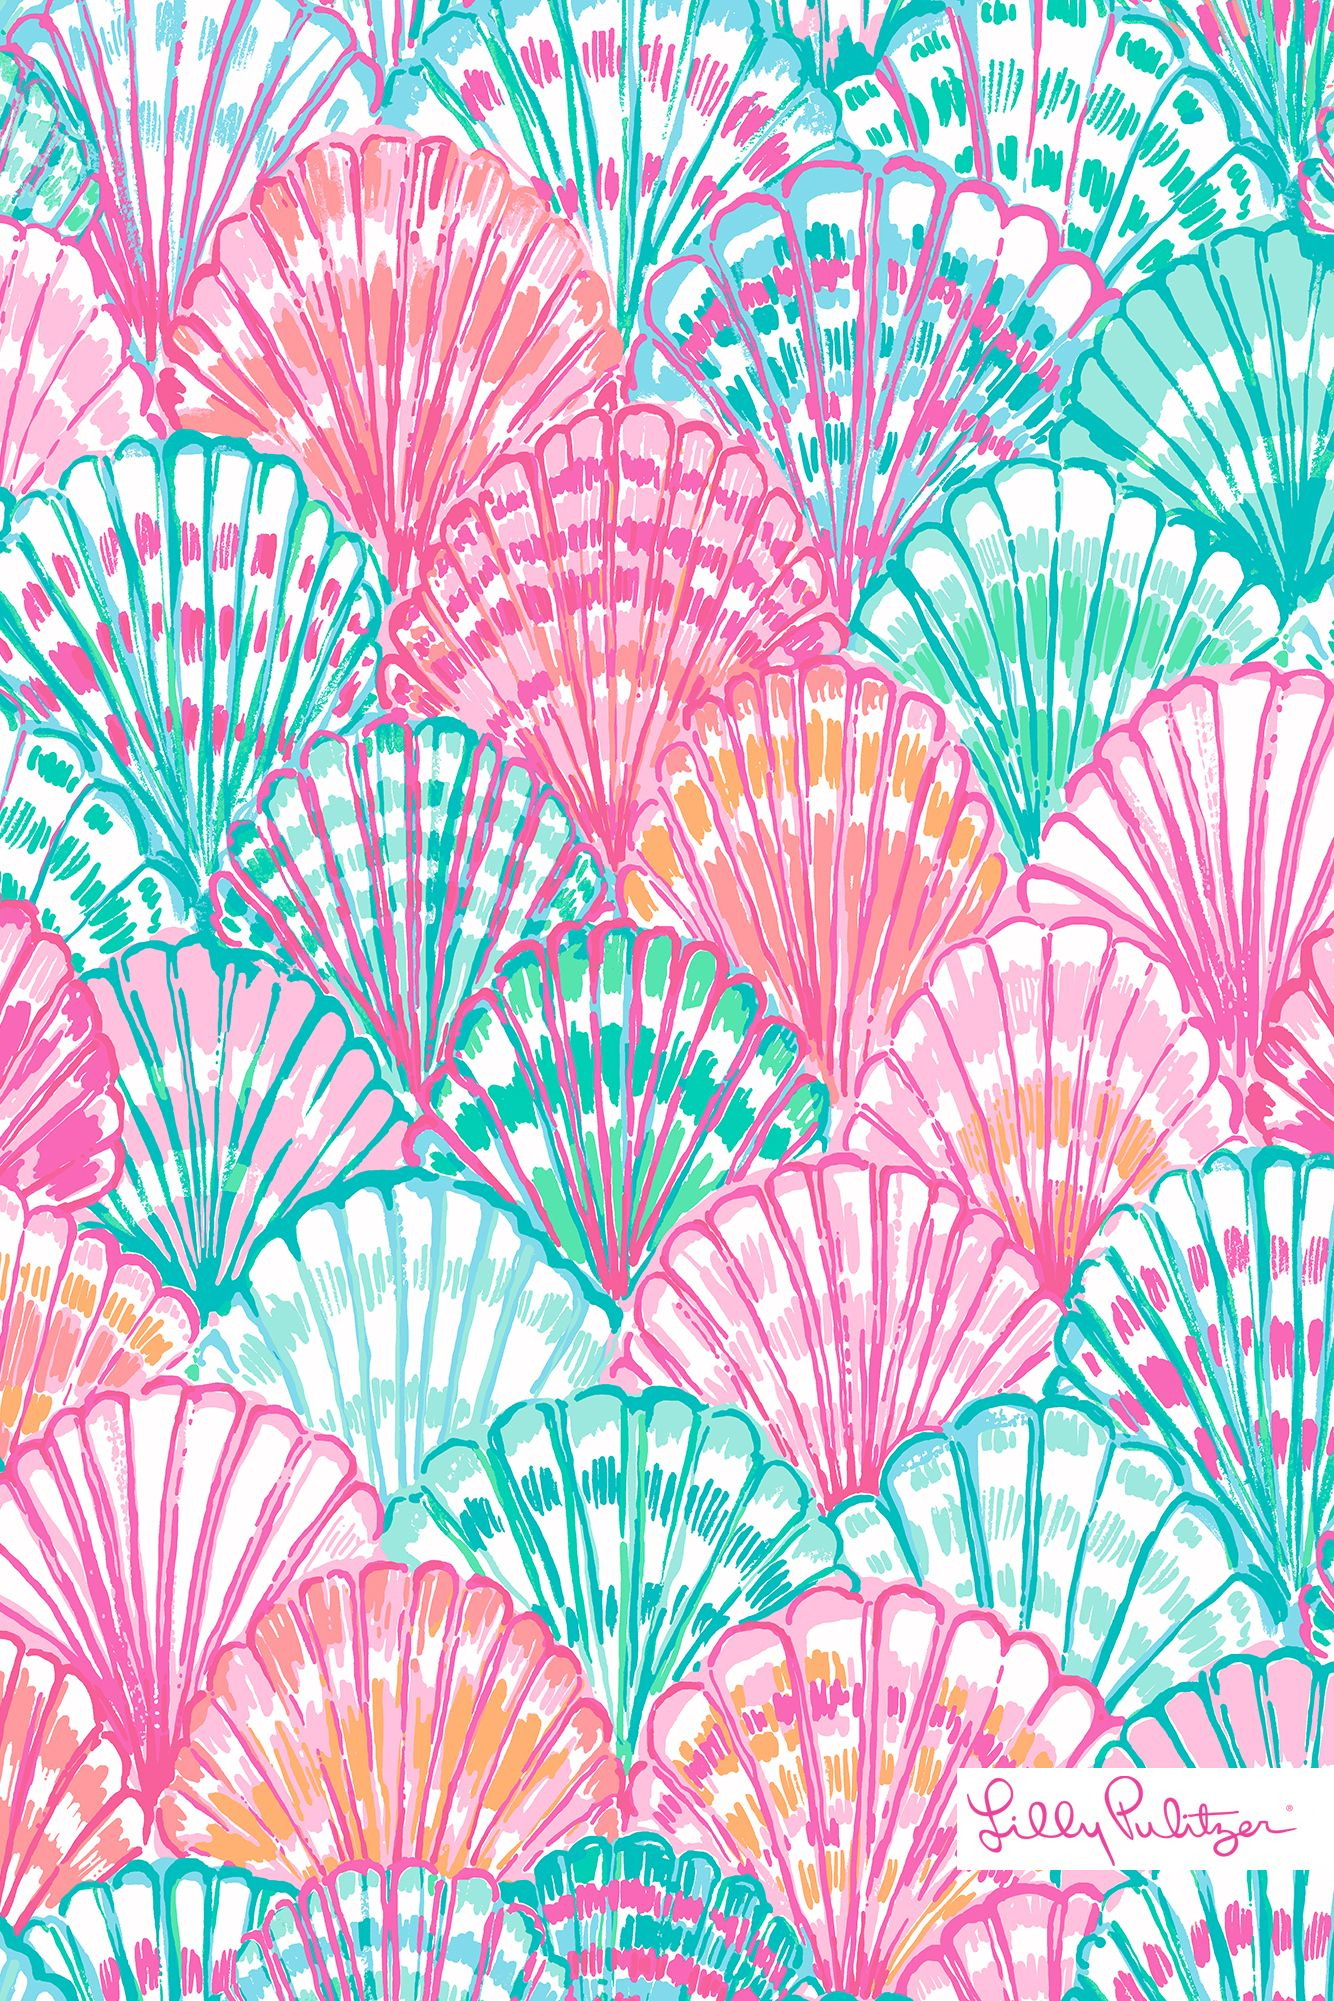 Sigue En Pinterest A Sofiacaterinaa Para Mas Lilly Pulitzer